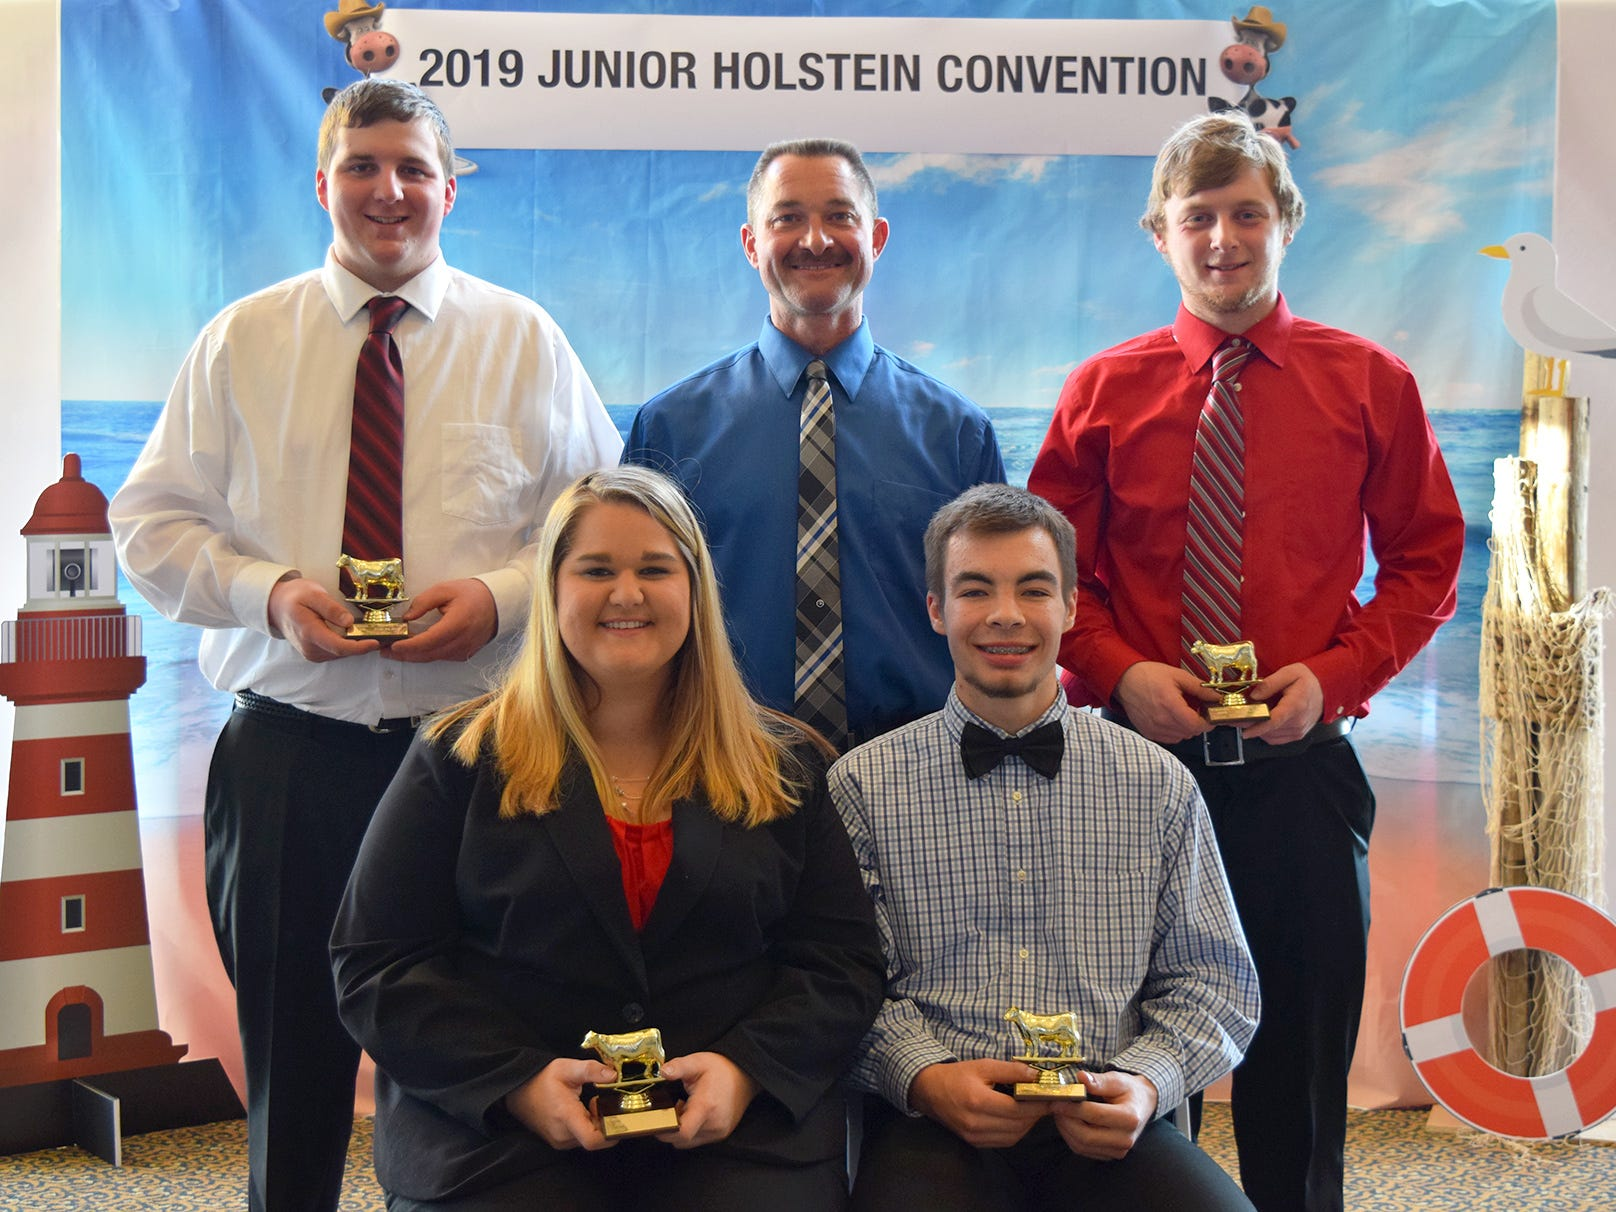 Placing second in the Senior Division of the Dairy Bowl is the team from Door County, front row (from left) Clarie Olson and  Zach Olson. Back row (from left) Austin Vandertie, coach Richard Olson and  Jared Baudhuin.